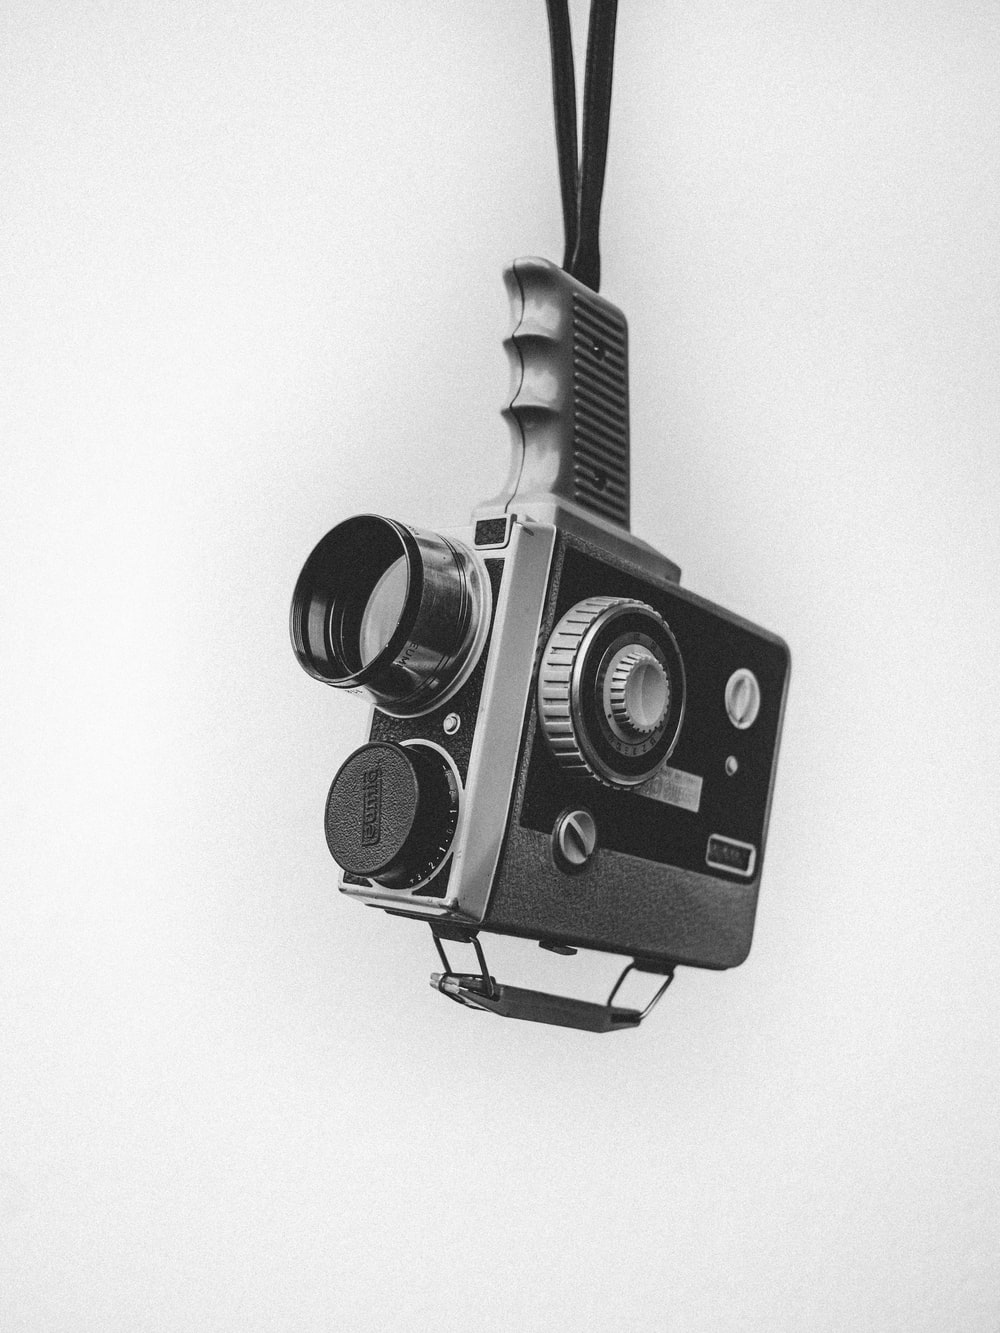 Camera on white surface